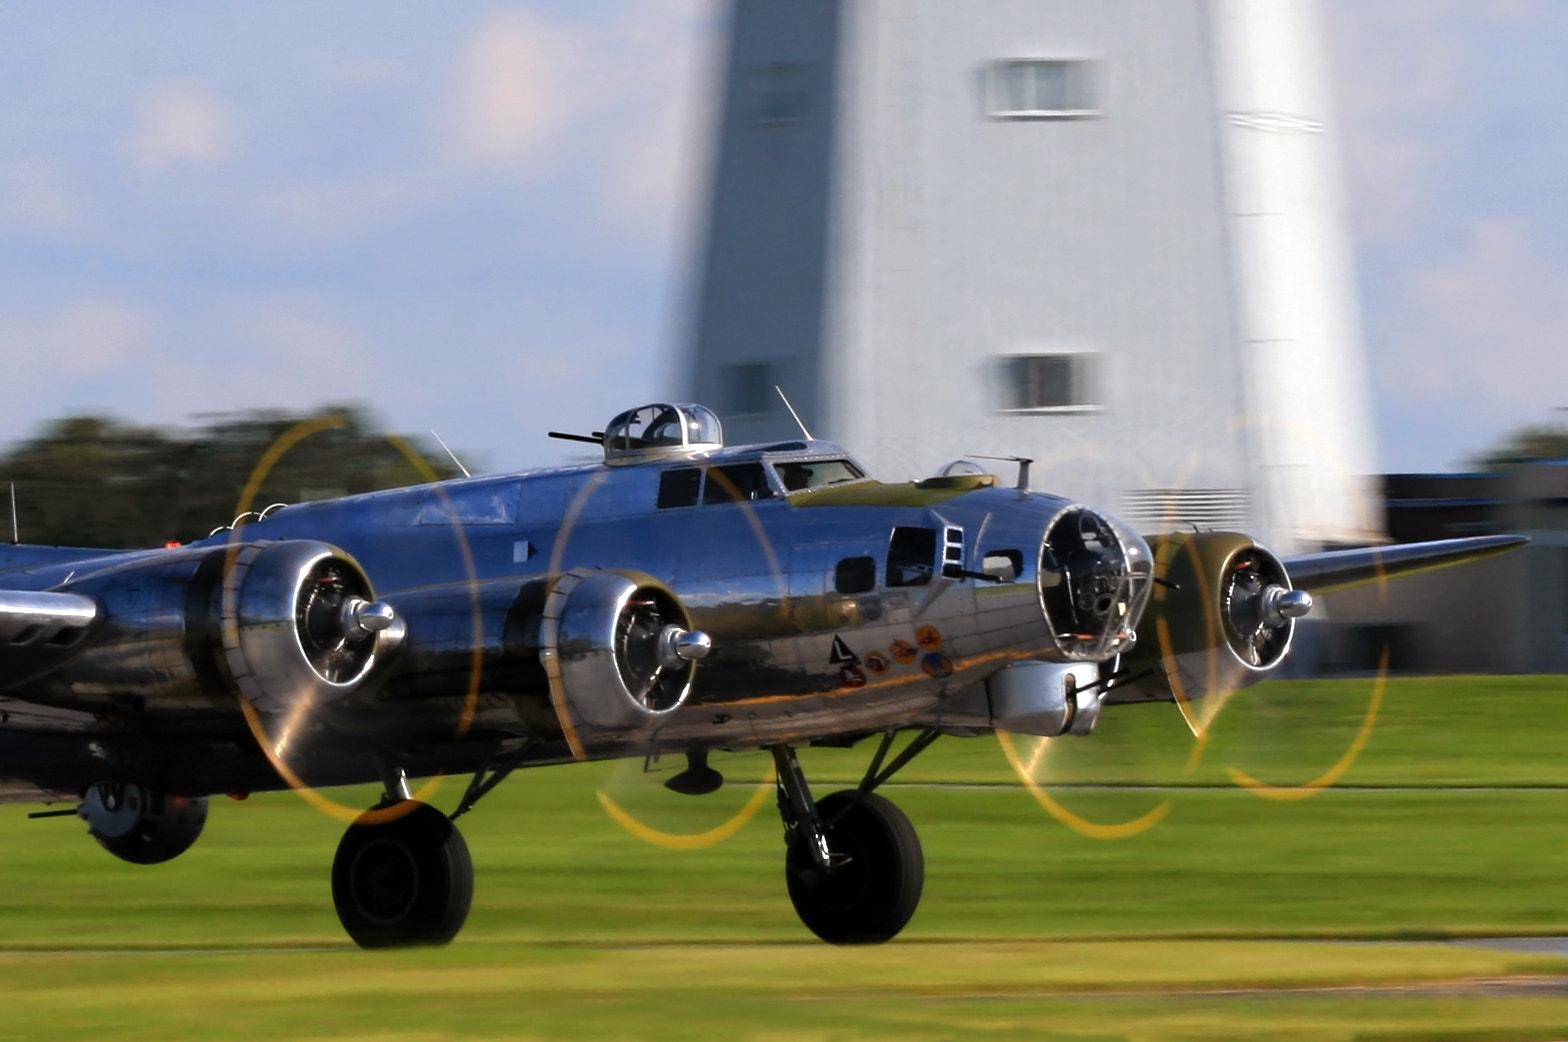 Photograph Wings and Props in Motion by David F. Brown on 500px